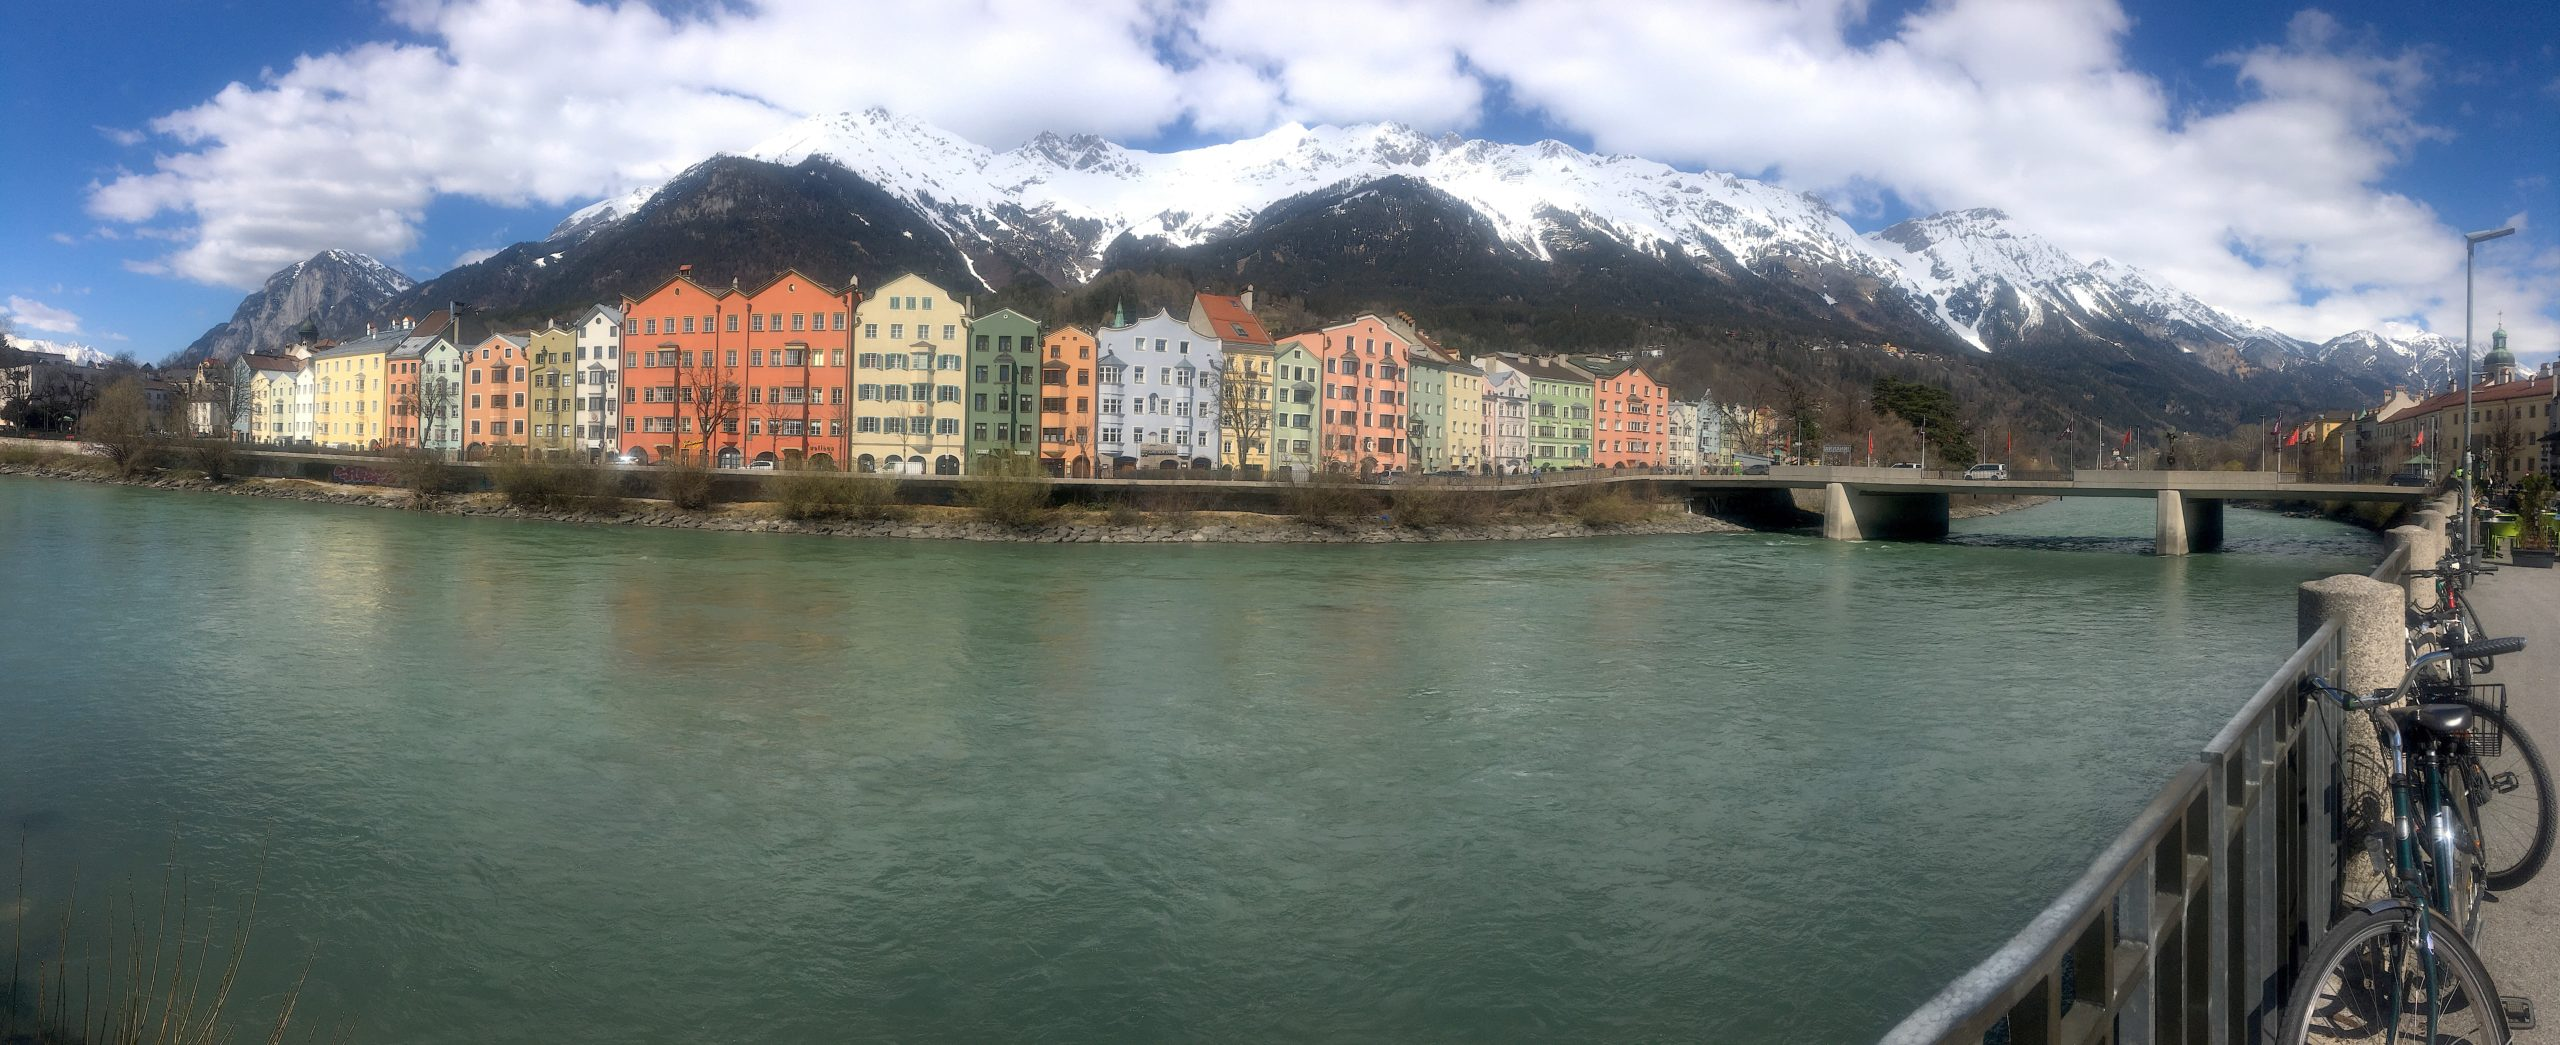 photo of innsbruck in austria with the alps in the background